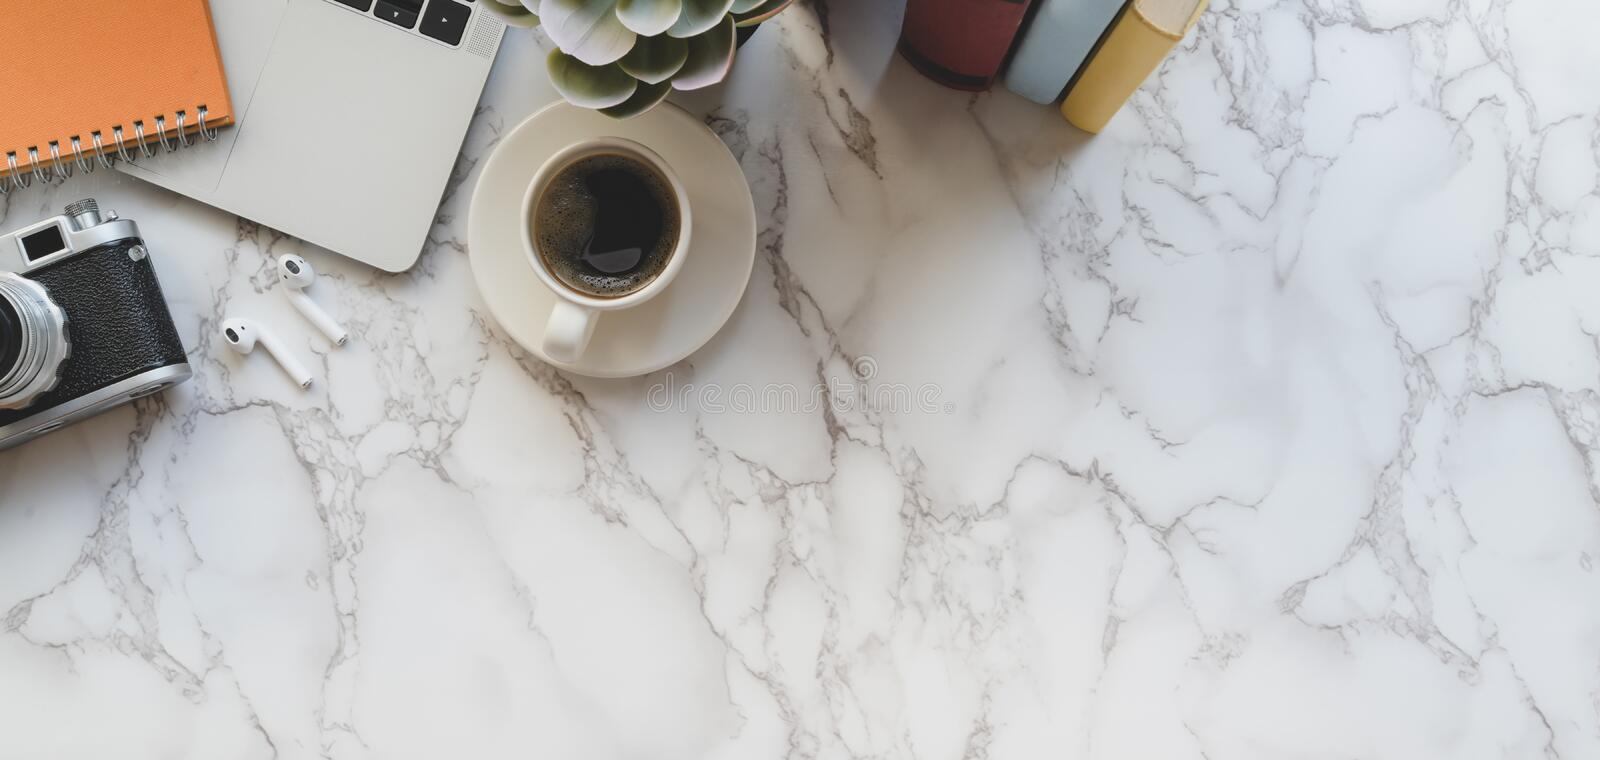 Top view of stylish photographer workspace with laptop computer and office supplies on marble desk royalty free stock photos